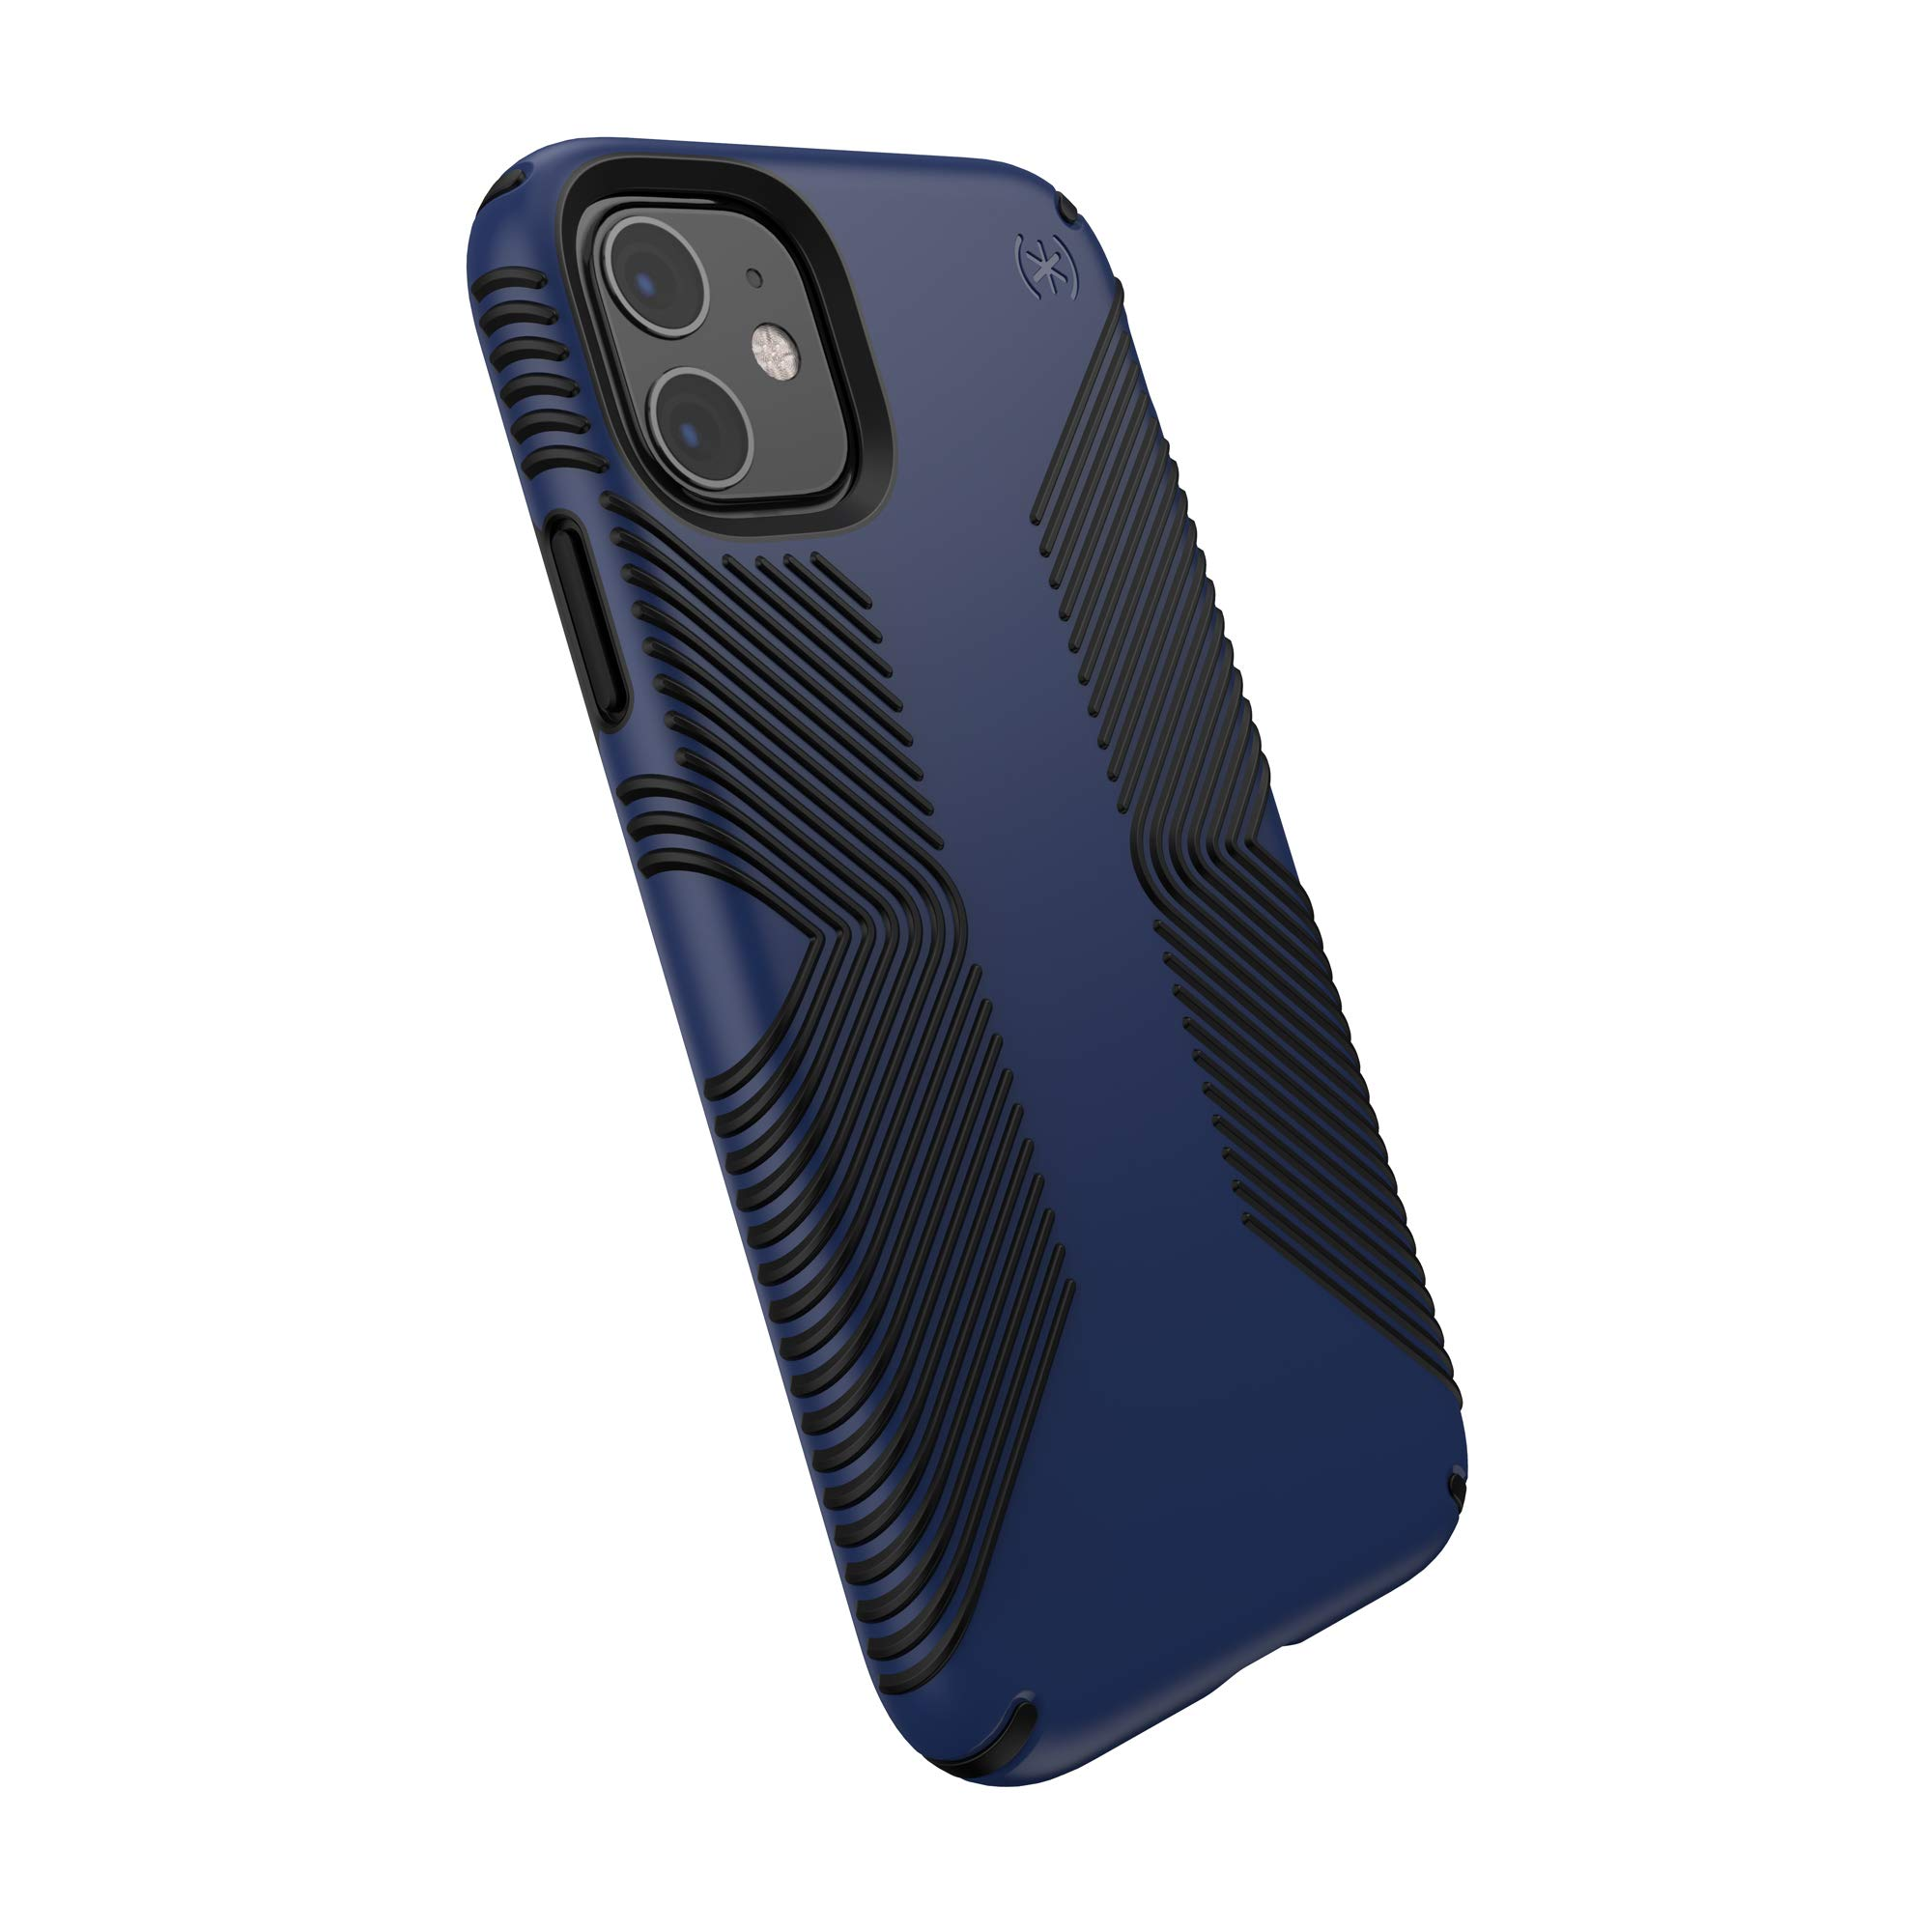 Speck Products Presidio Grip iPhone 11 Case, Coastal Blue/Black